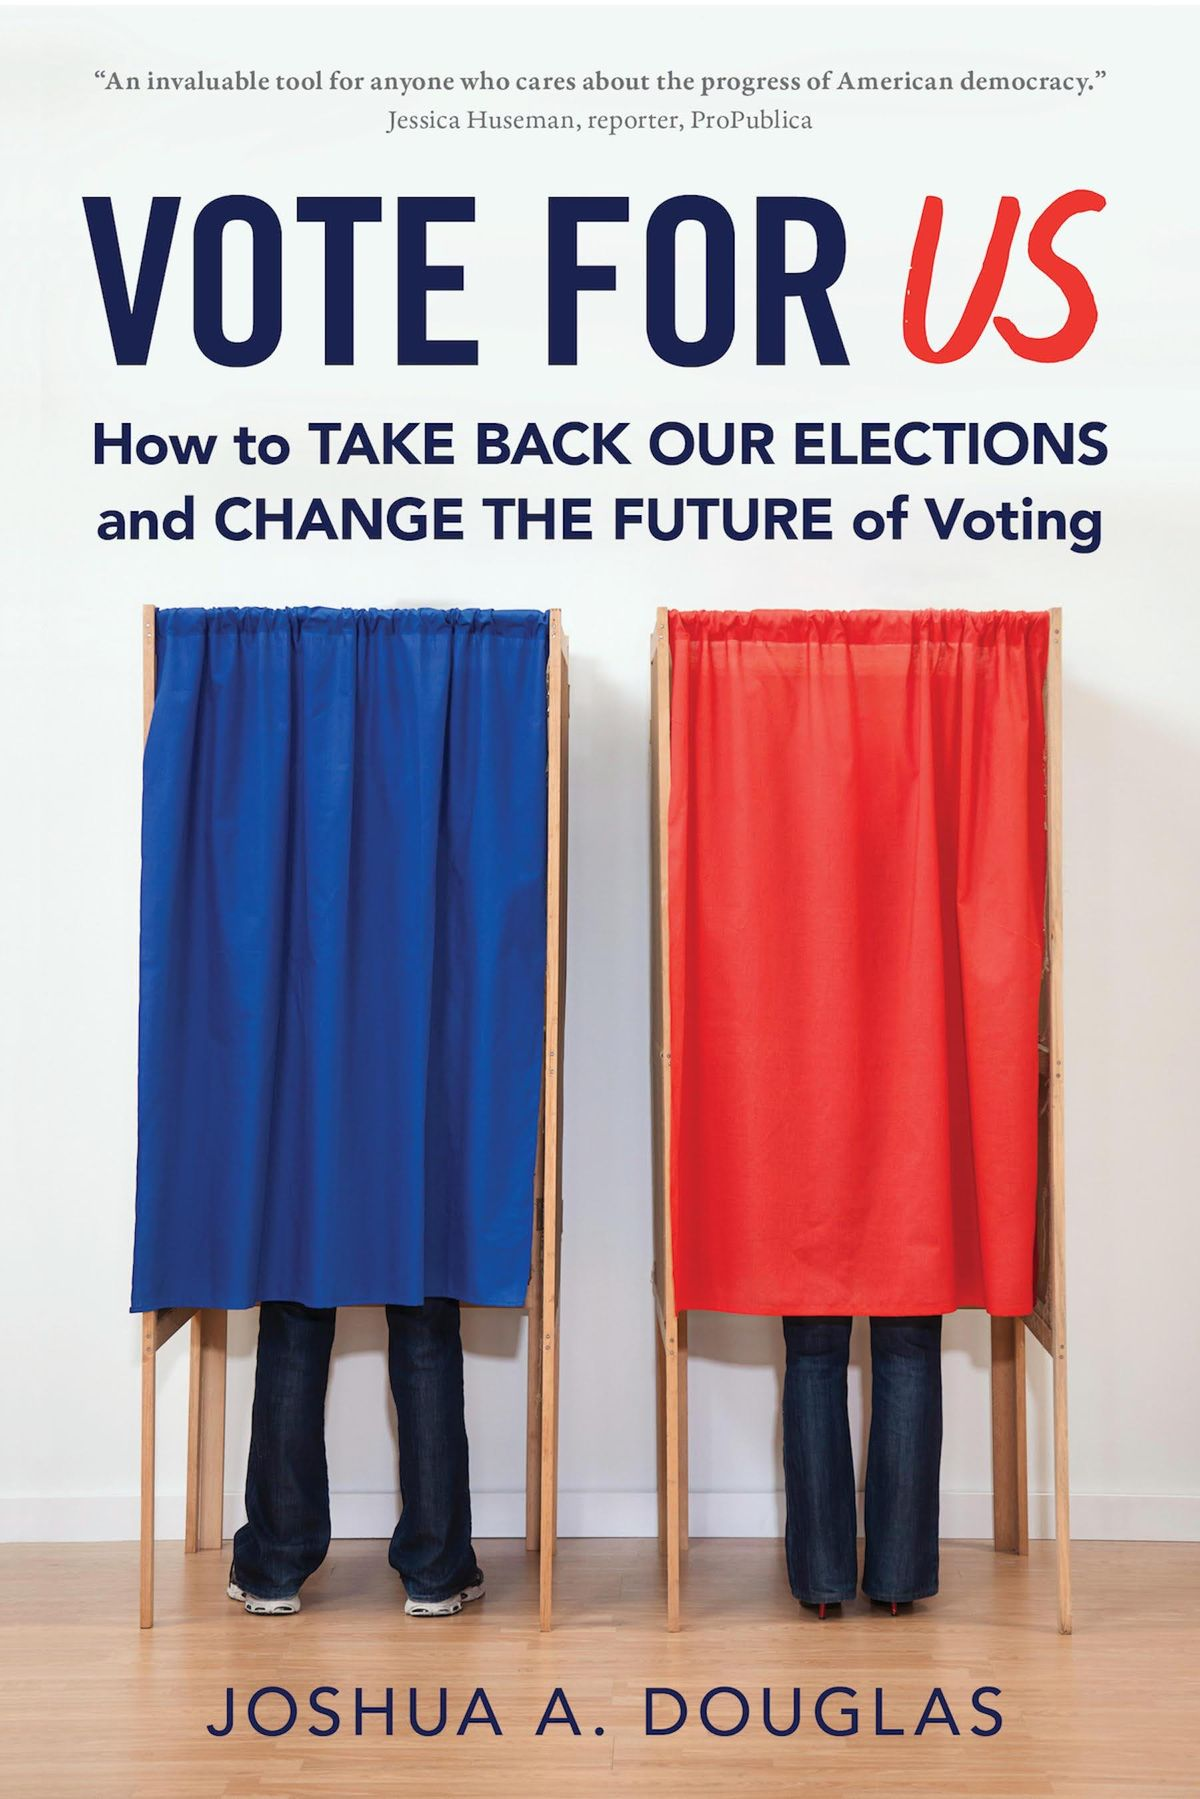 Vote for US How to Take Back Our Elections and Change the Future of Voting with Joshua A. Douglas